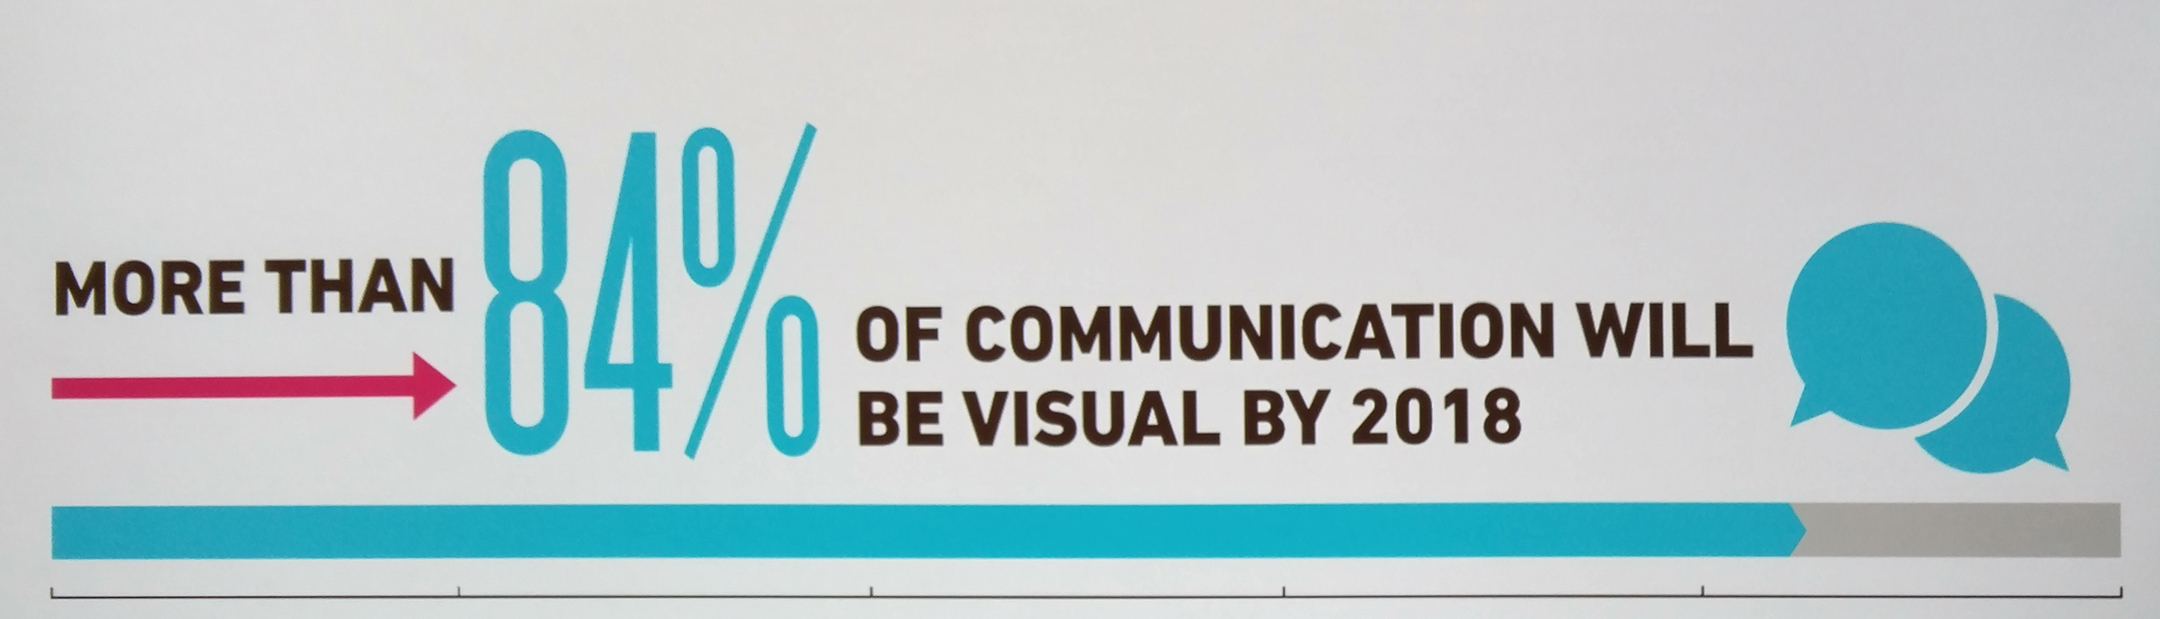 More than 84% of communication will be visual by 2018. infographic